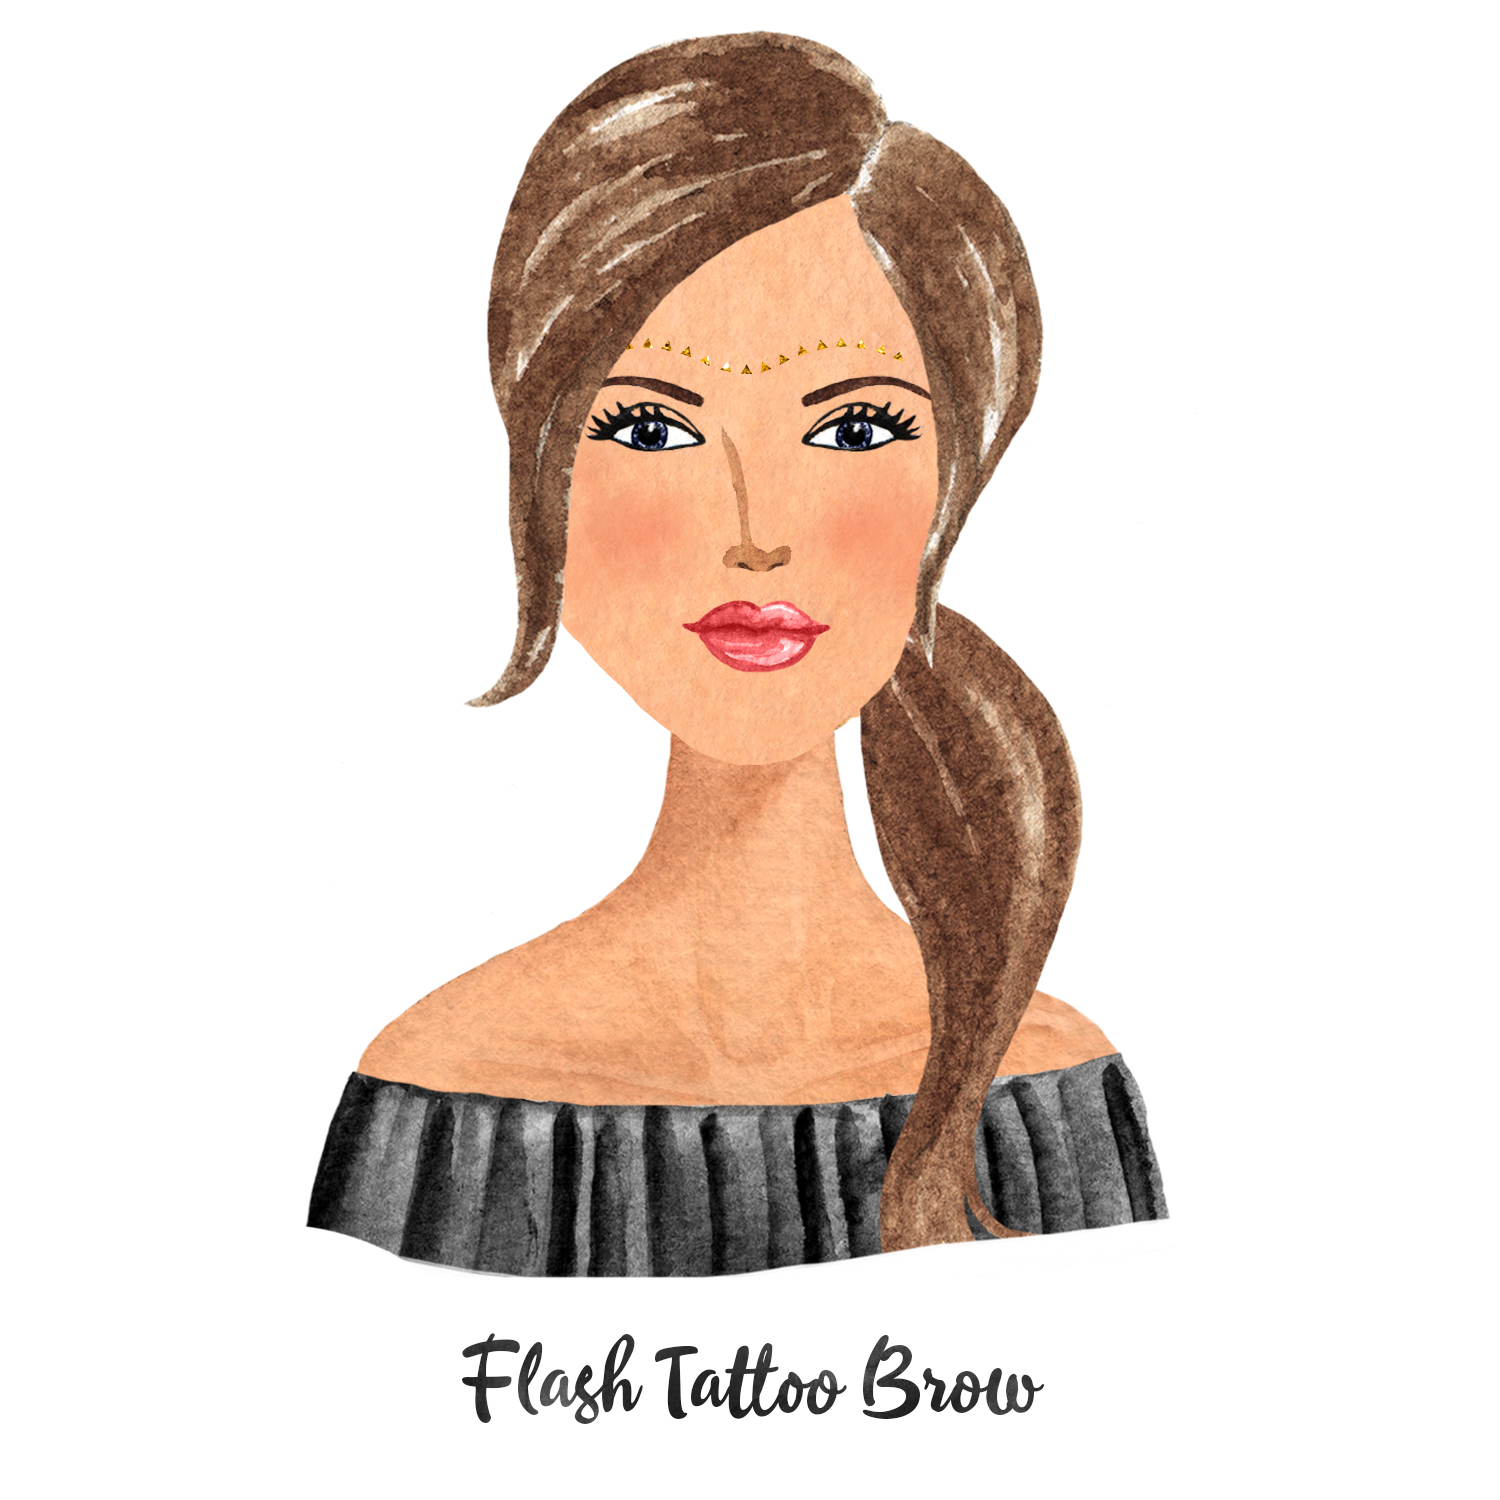 Flash Tattoo Brow.jpg